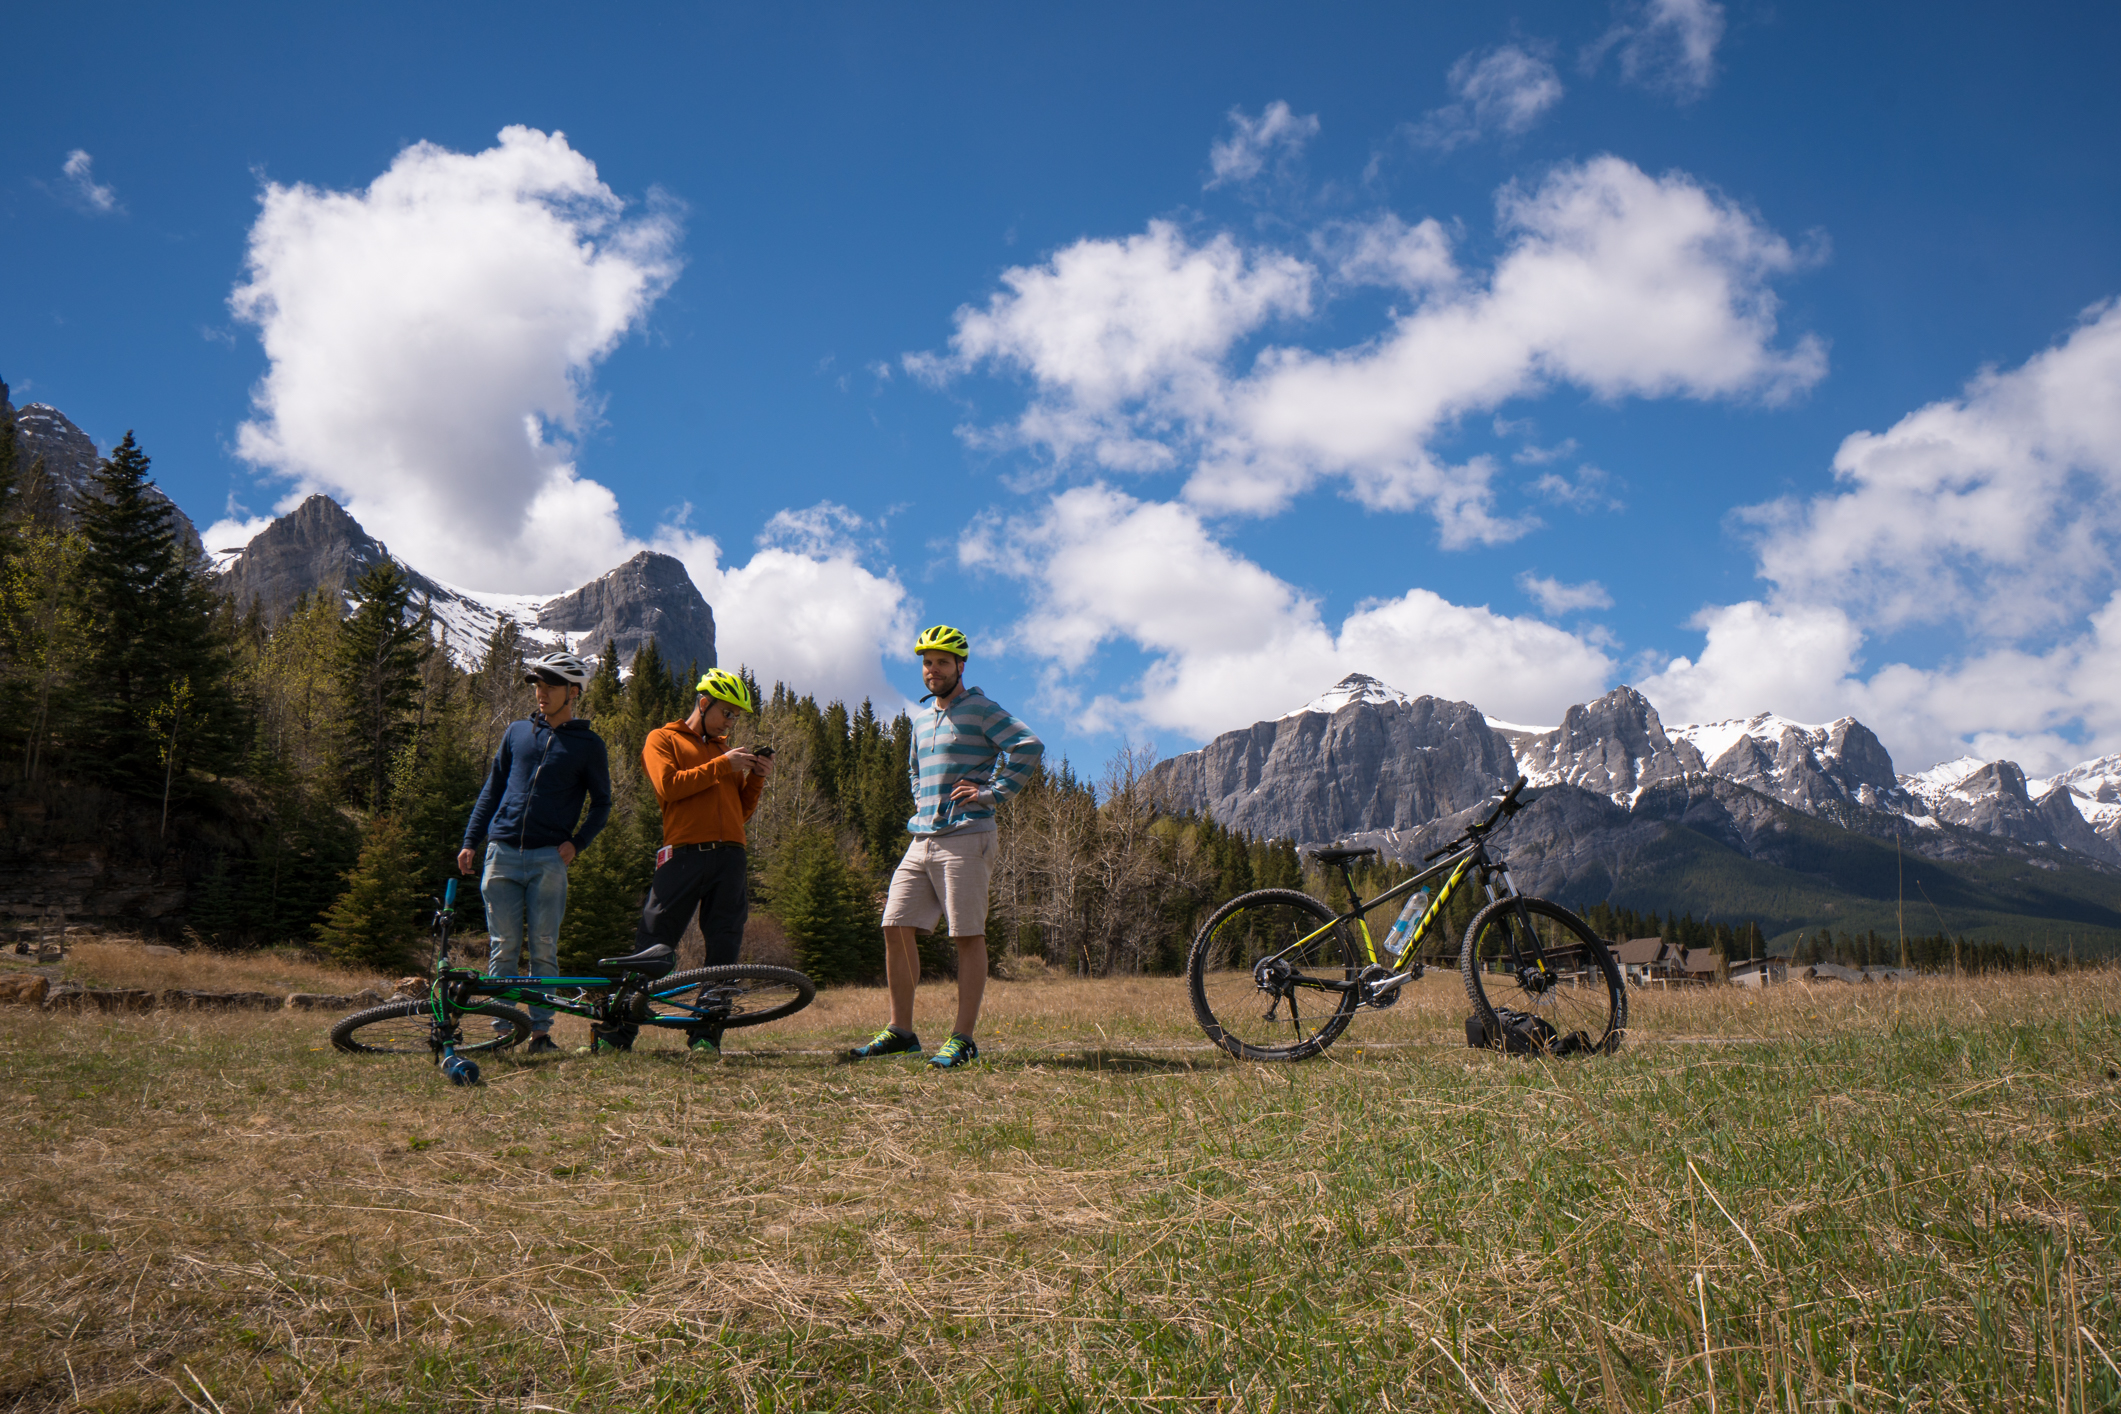 New friends and old friends underneath the mountains of Banff, Alberta.